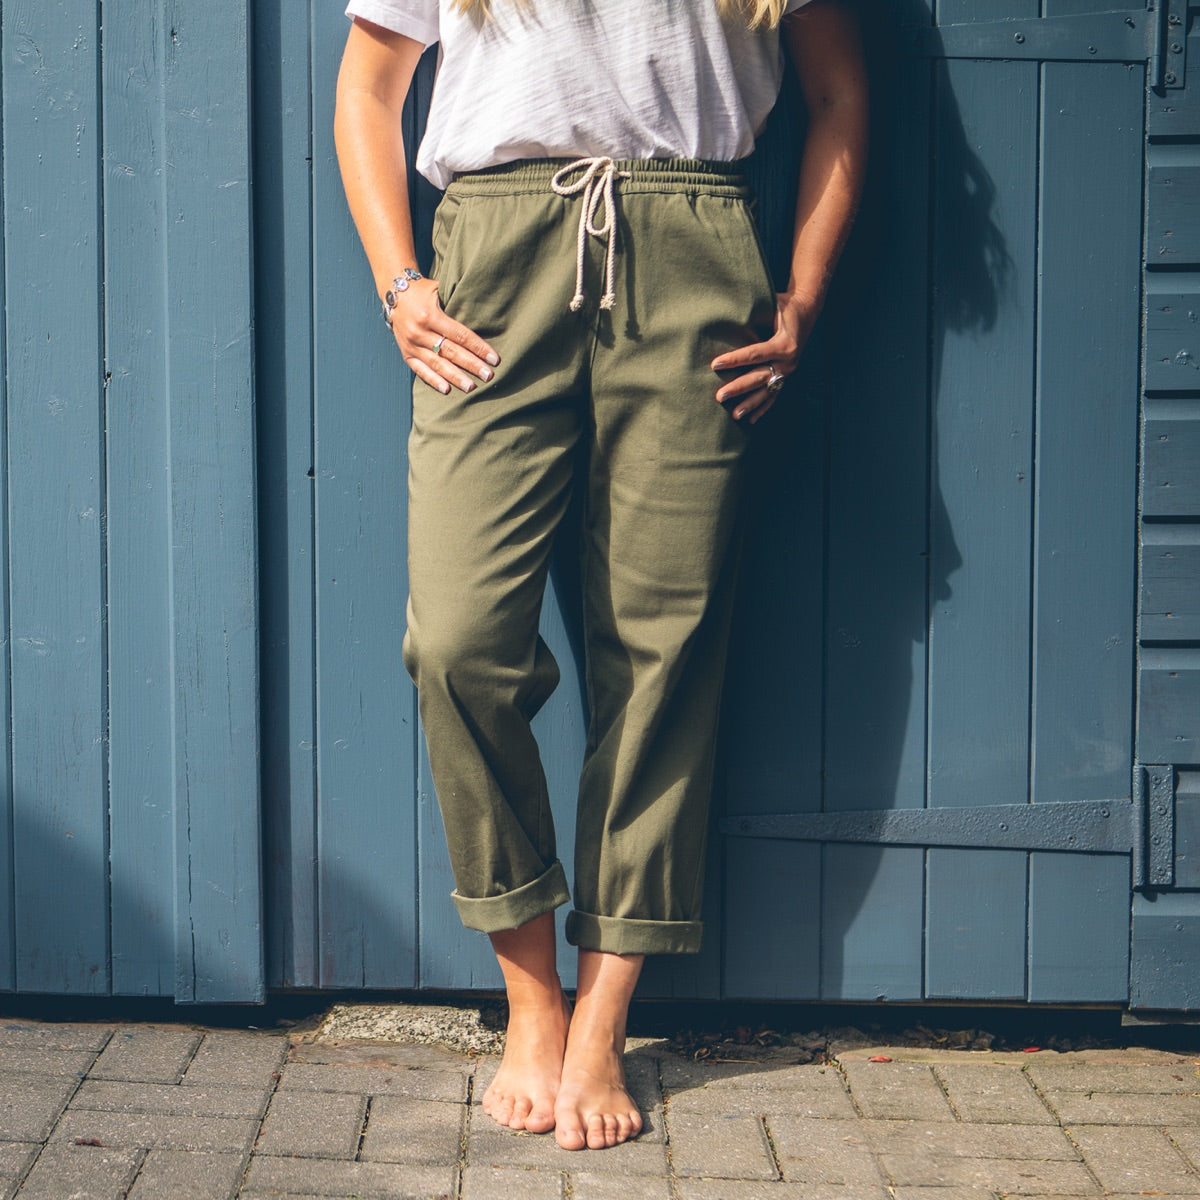 Roydon Trousers - Leaf Green image 1